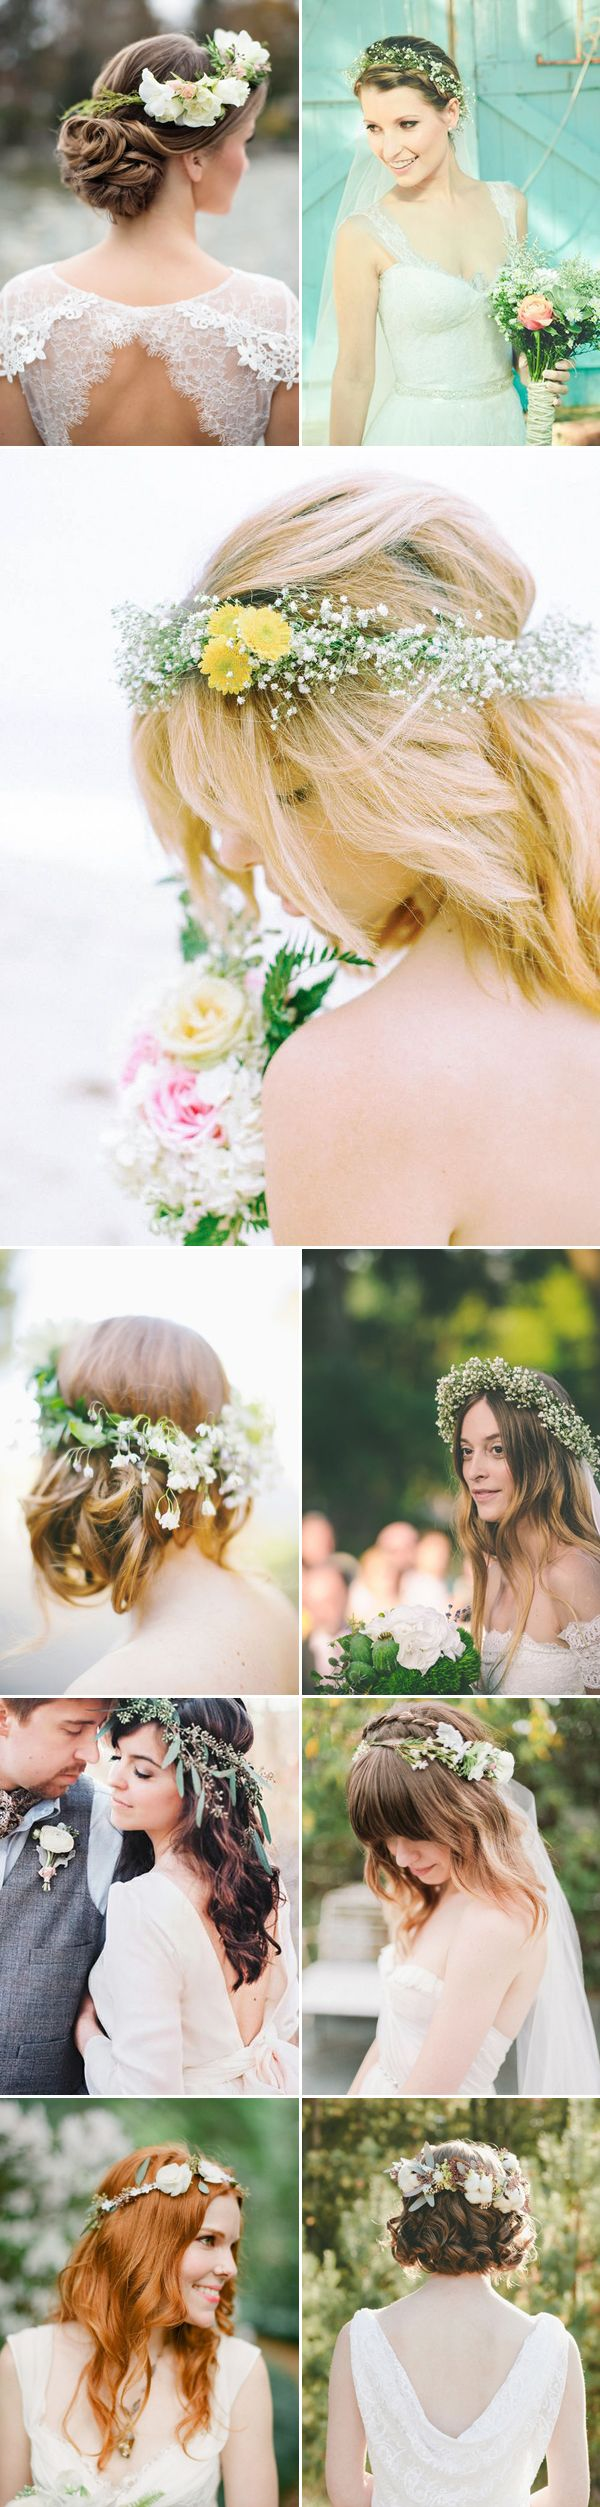 27 Down-to-earth Bridal Floral Crowns - Refreshing Green and White